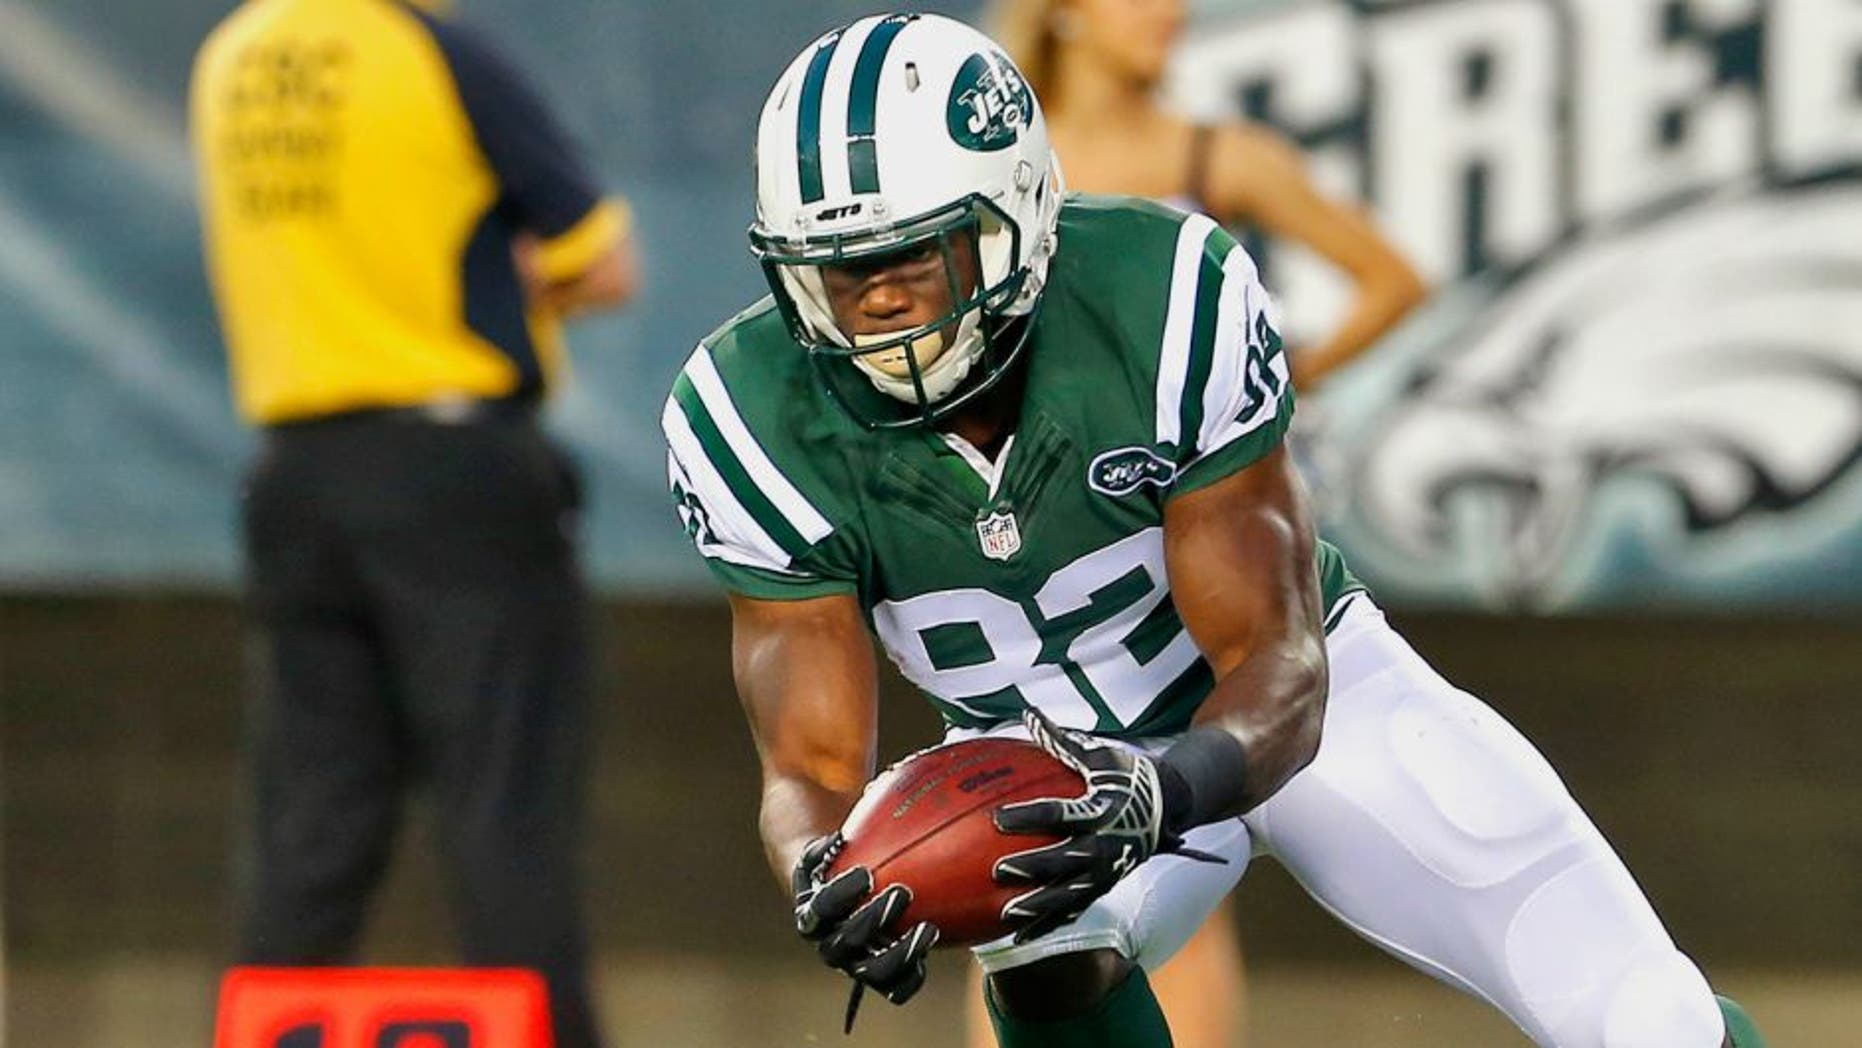 PHILADELPHIA, PA - AUGUST 28: Quincy Enunwa #82 of the New York Jets downs the ball on a punt on the sis years line during a preseason football game against the Philadelphia Eagles at Lincoln Financial Field on August 28, 2014 in Philadelphia, Pennsylvania. (Photo by Rich Schultz /Getty Images)